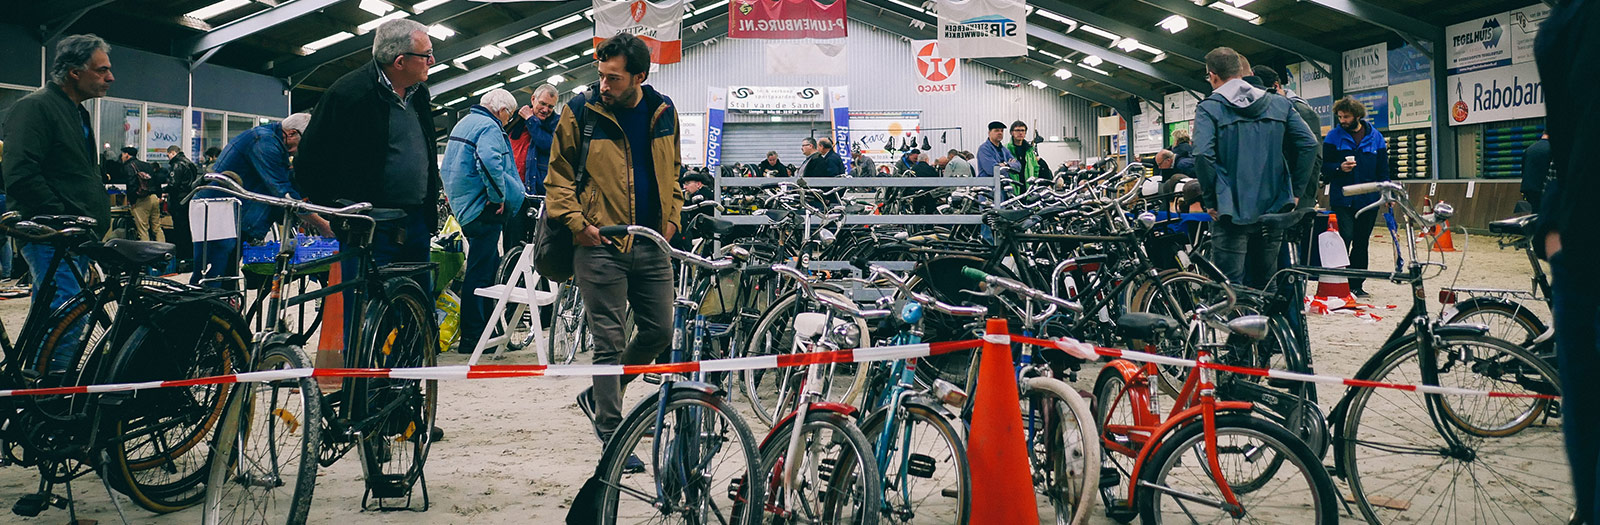 The Dutch Bicycle Collection Fair<br> Fietsen Verzamelbeurs